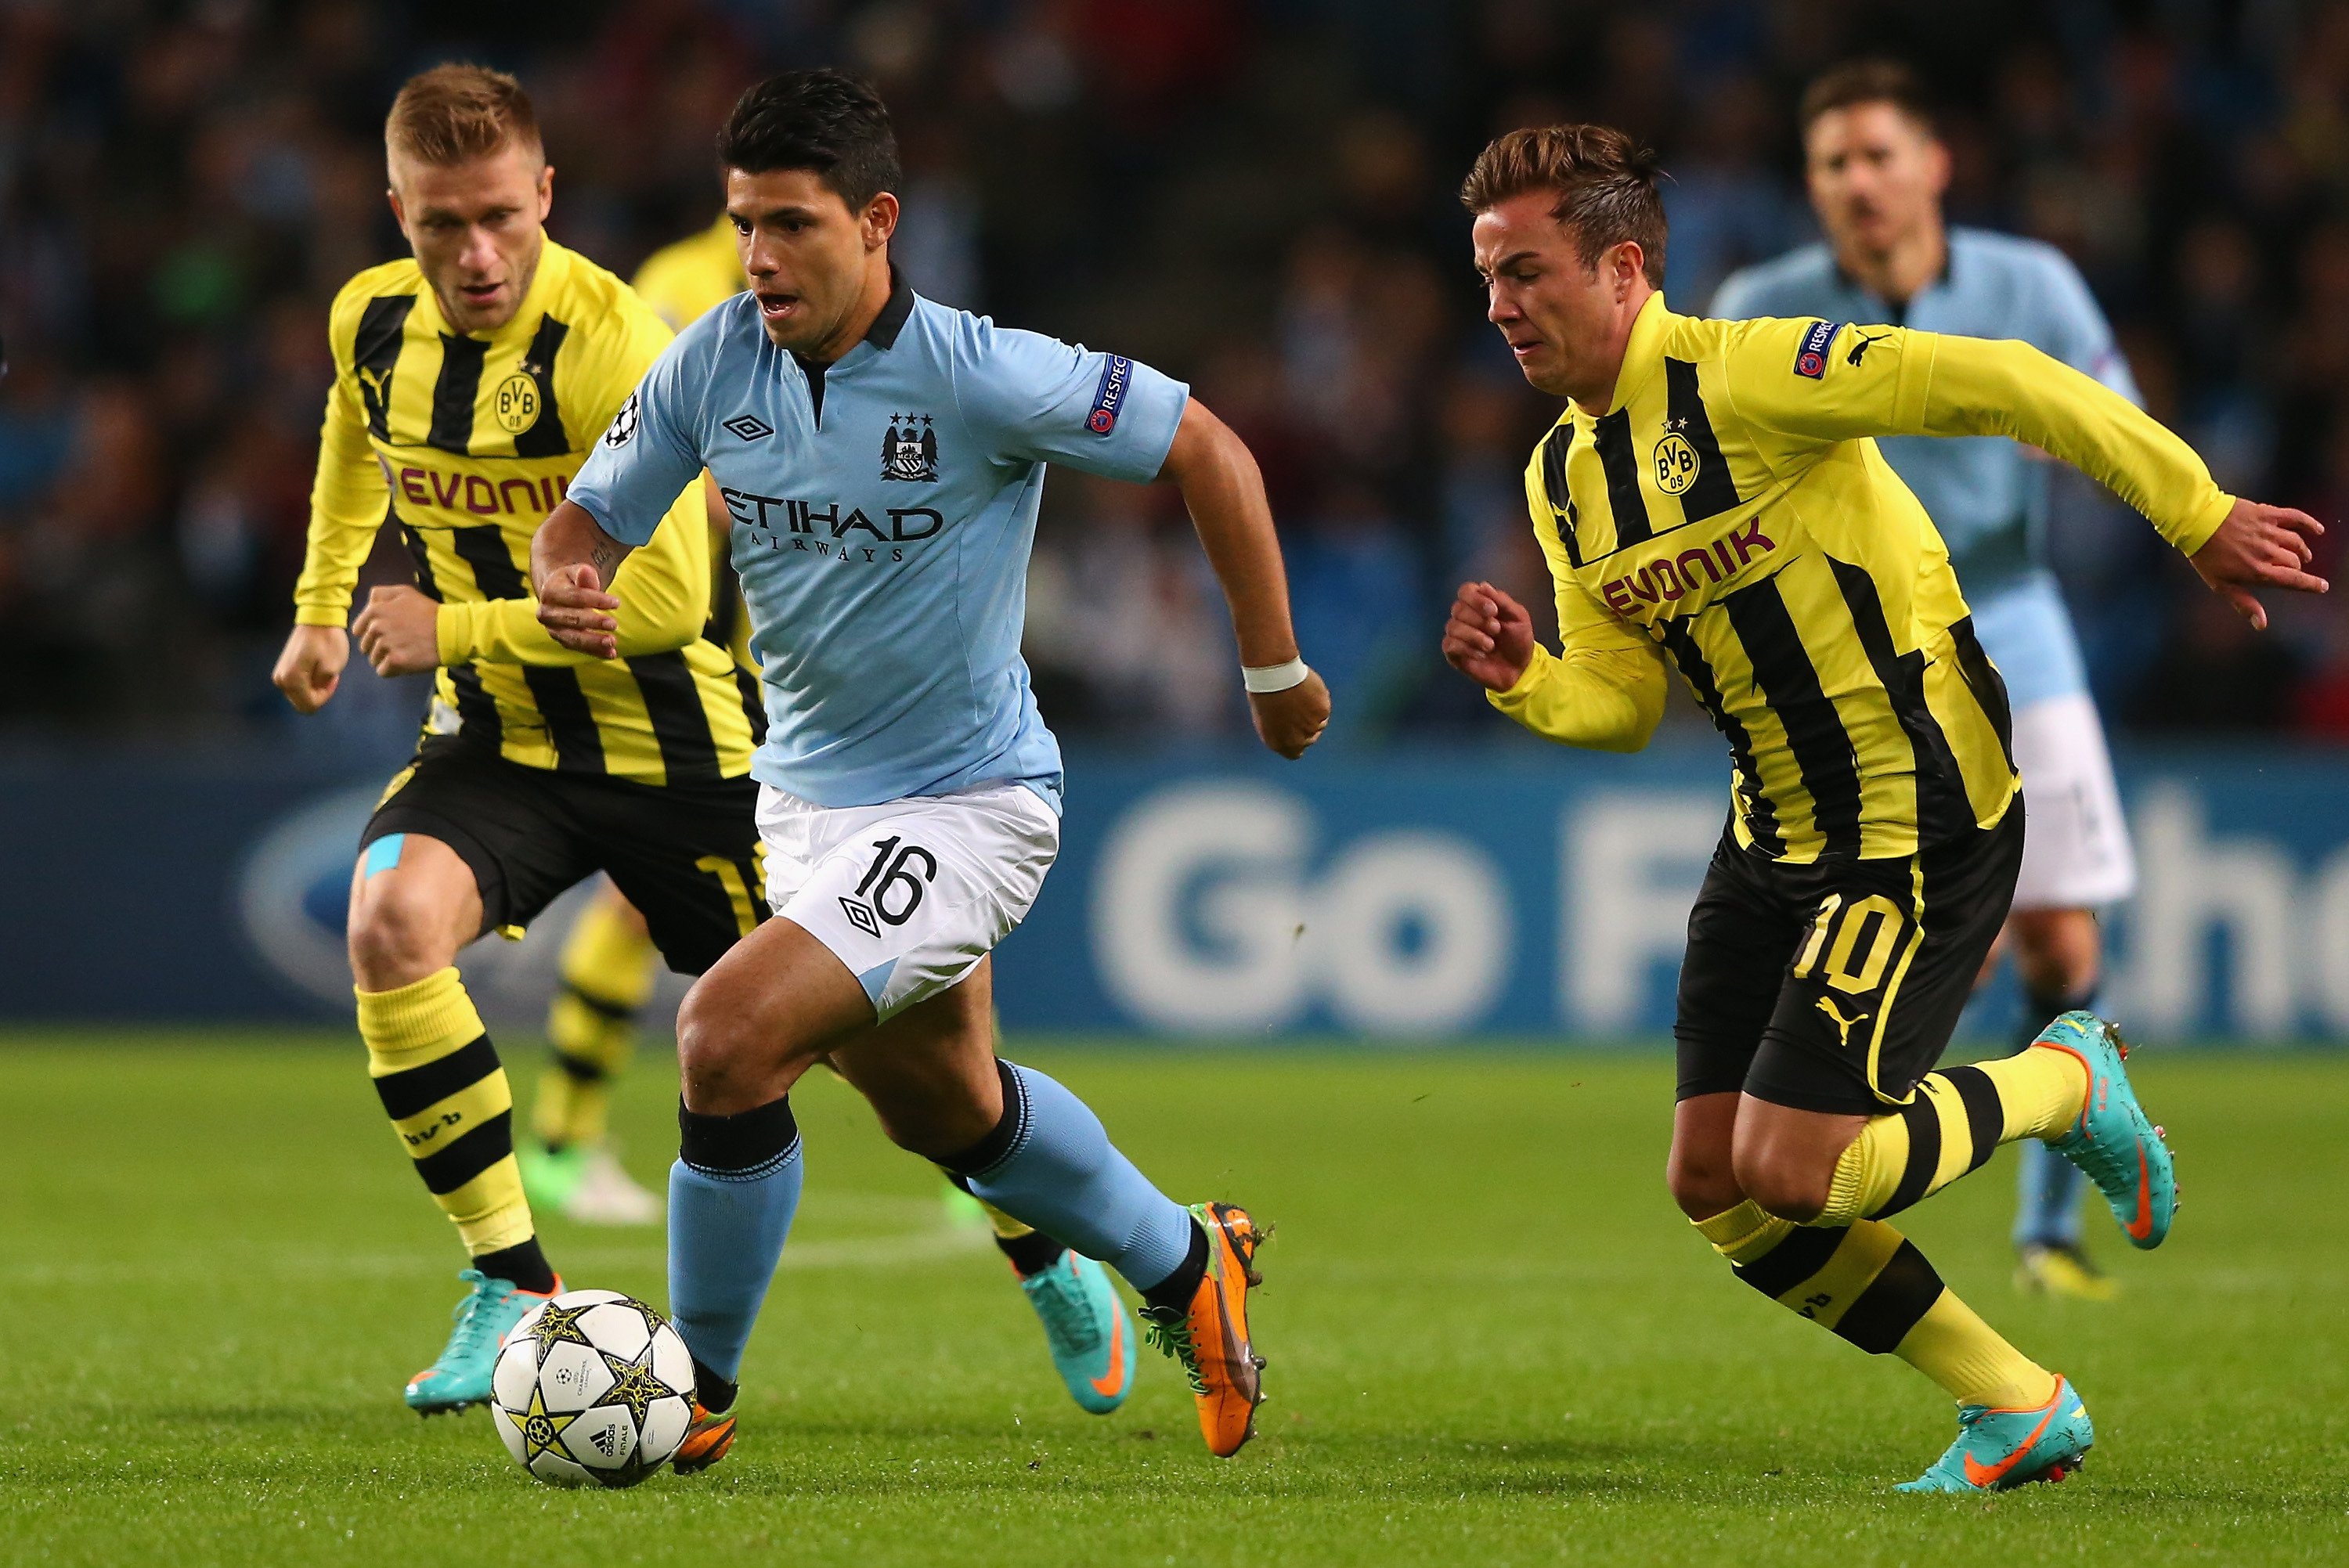 Dortmund Vs Manchester City Date Time Live Stream Tv Info And Preview Bleacher Report Latest News Videos And Highlights